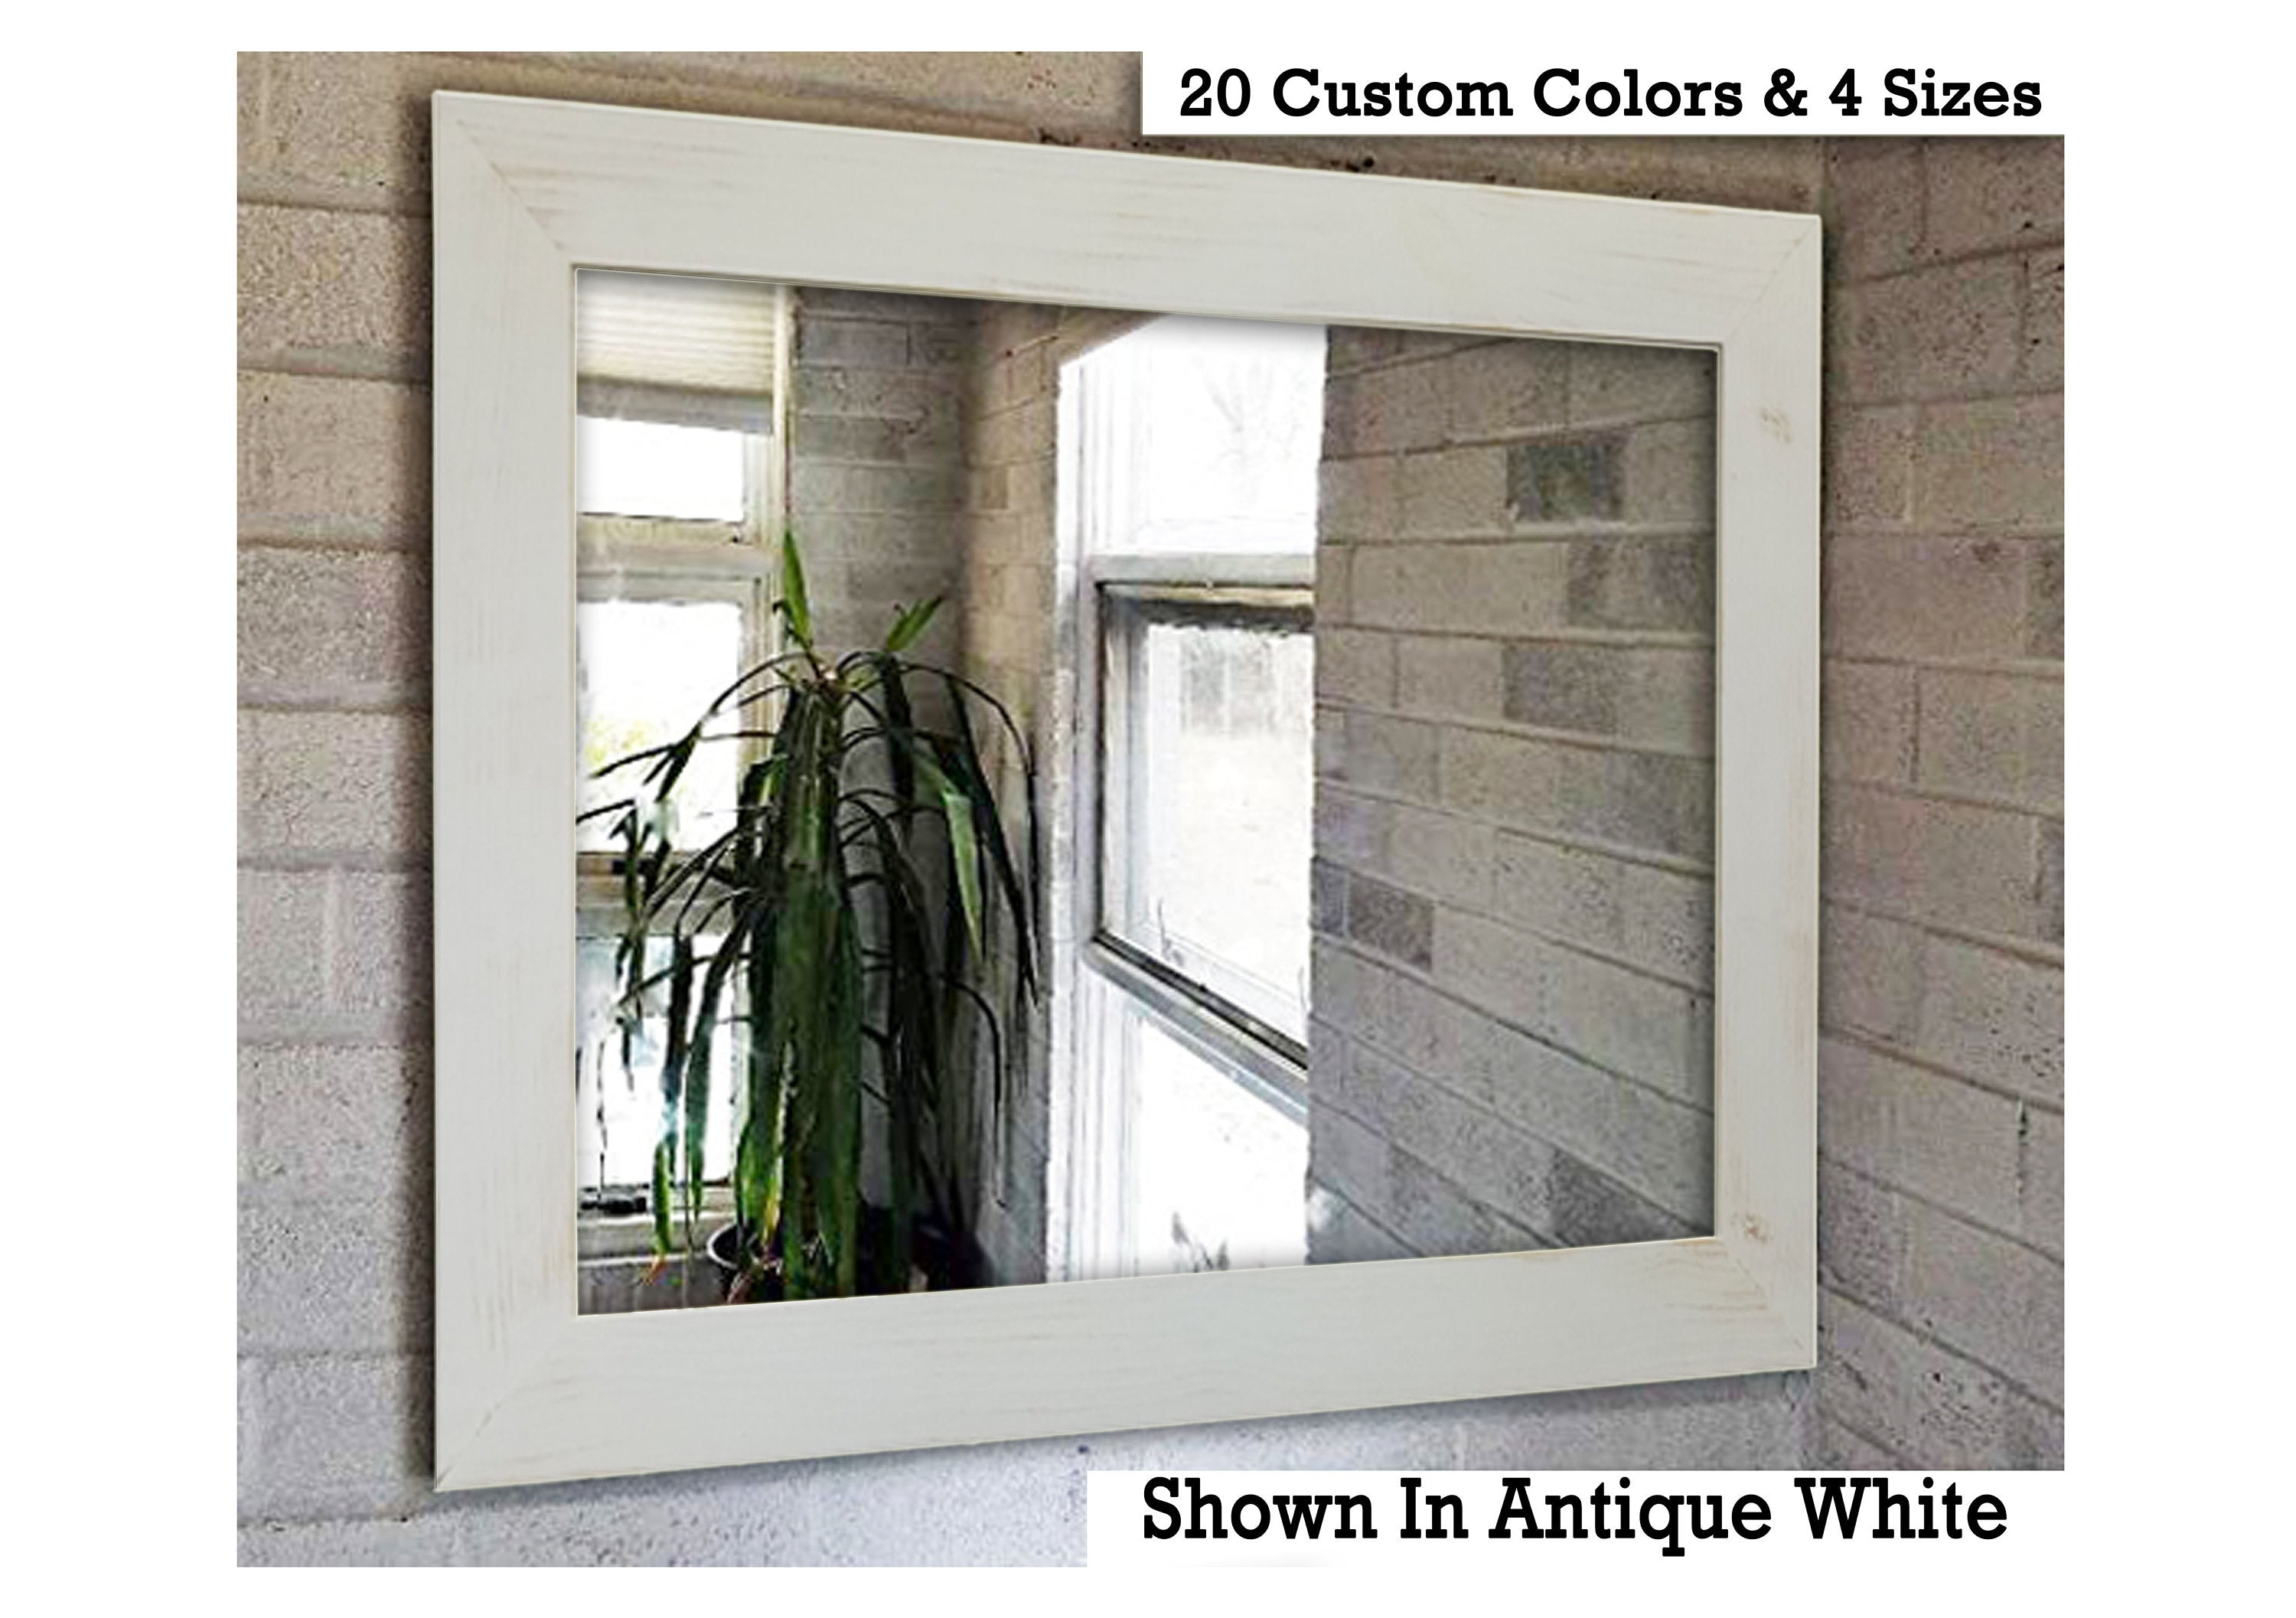 Shiplap Reclaimed Wood Mirror Shown in Antique White, 4 Sizes & 20 Colors - Renewed Decor & Storage